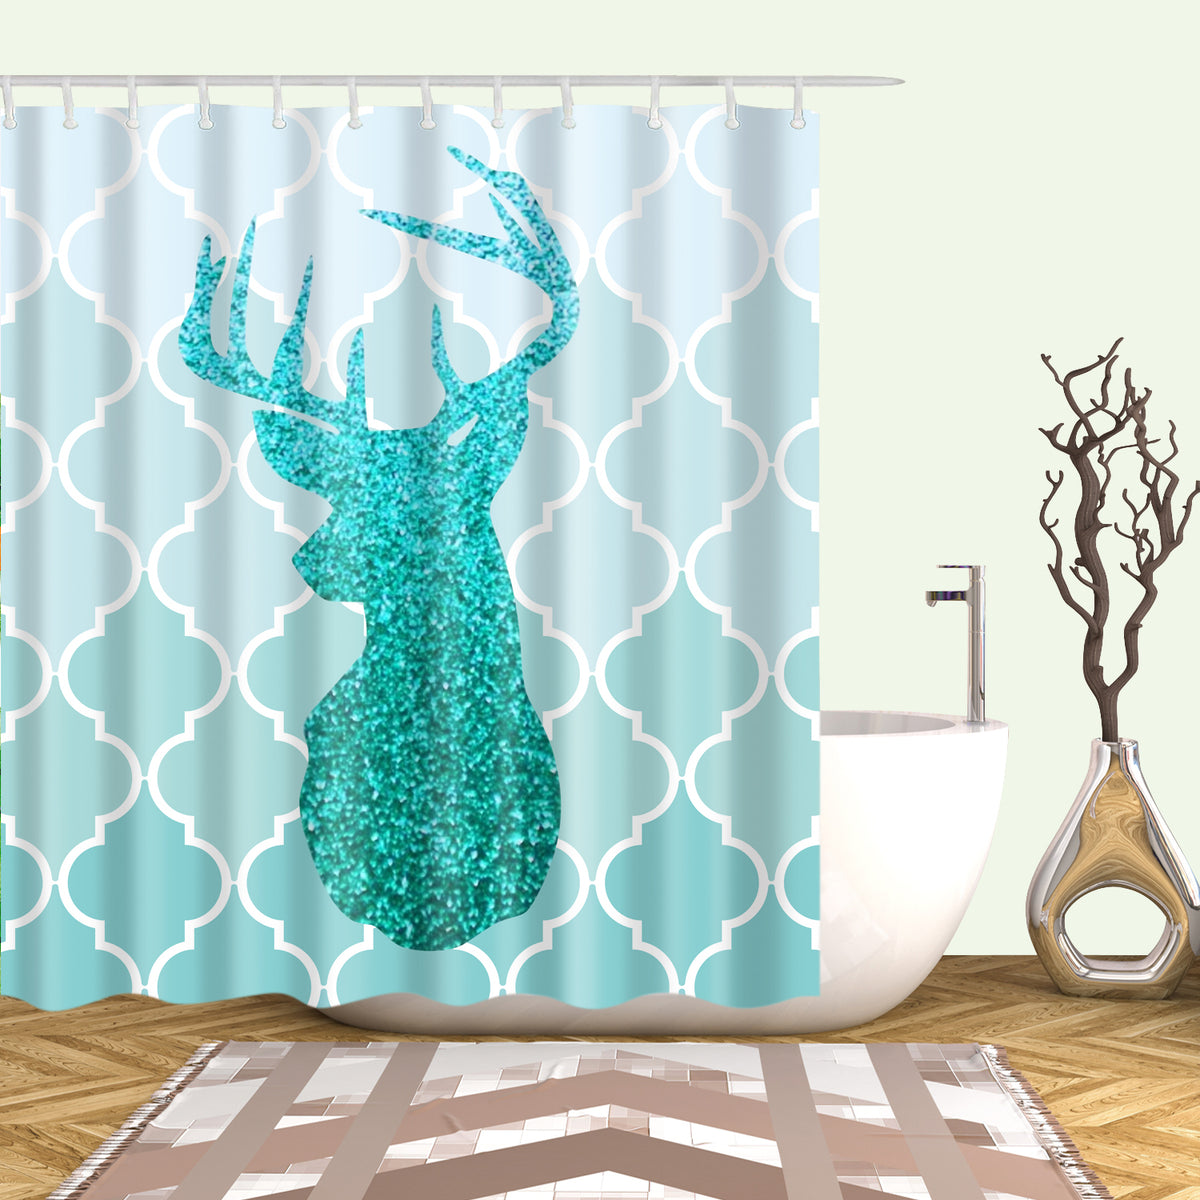 Elegant Glitter Christmas Deer Head In The Teal Shower